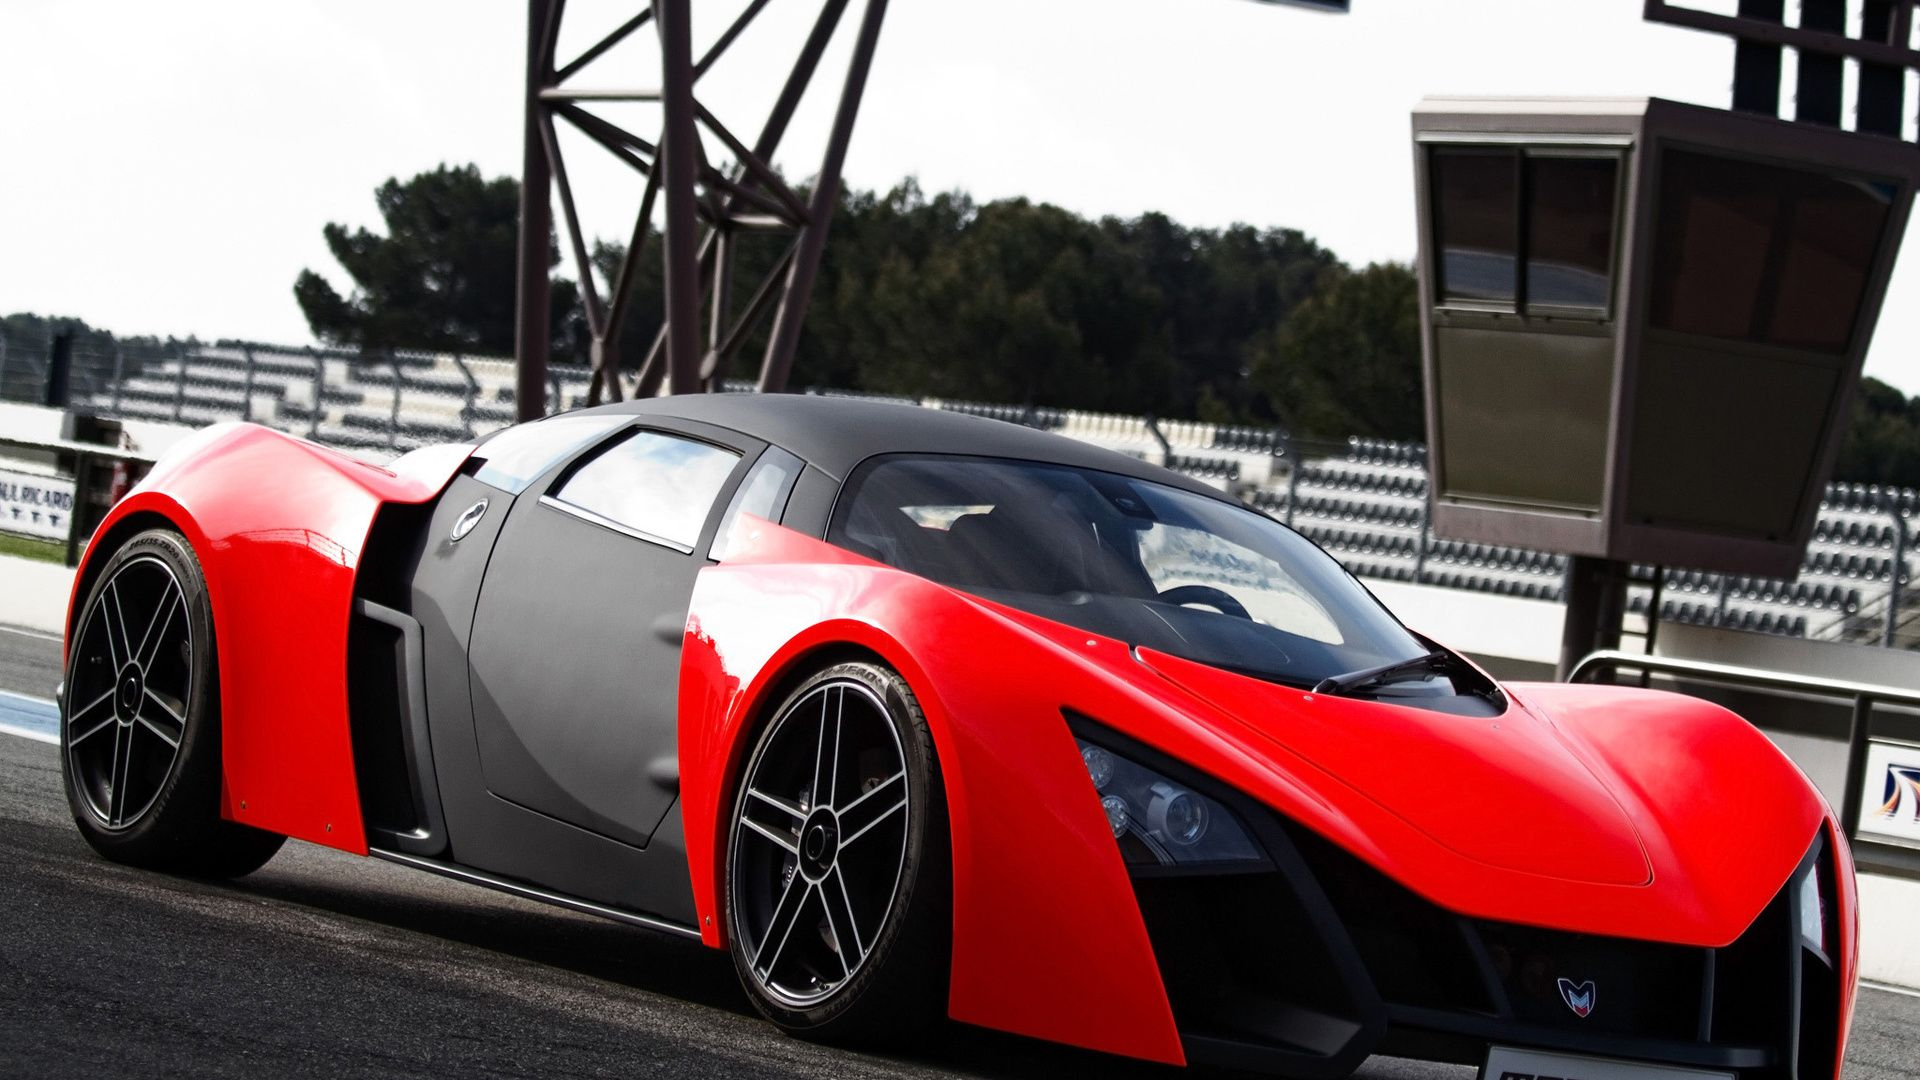 Sport Cars Wallpaper Hd 1080p: Marussia Red Sports Car - 1080p HD Wallpaper